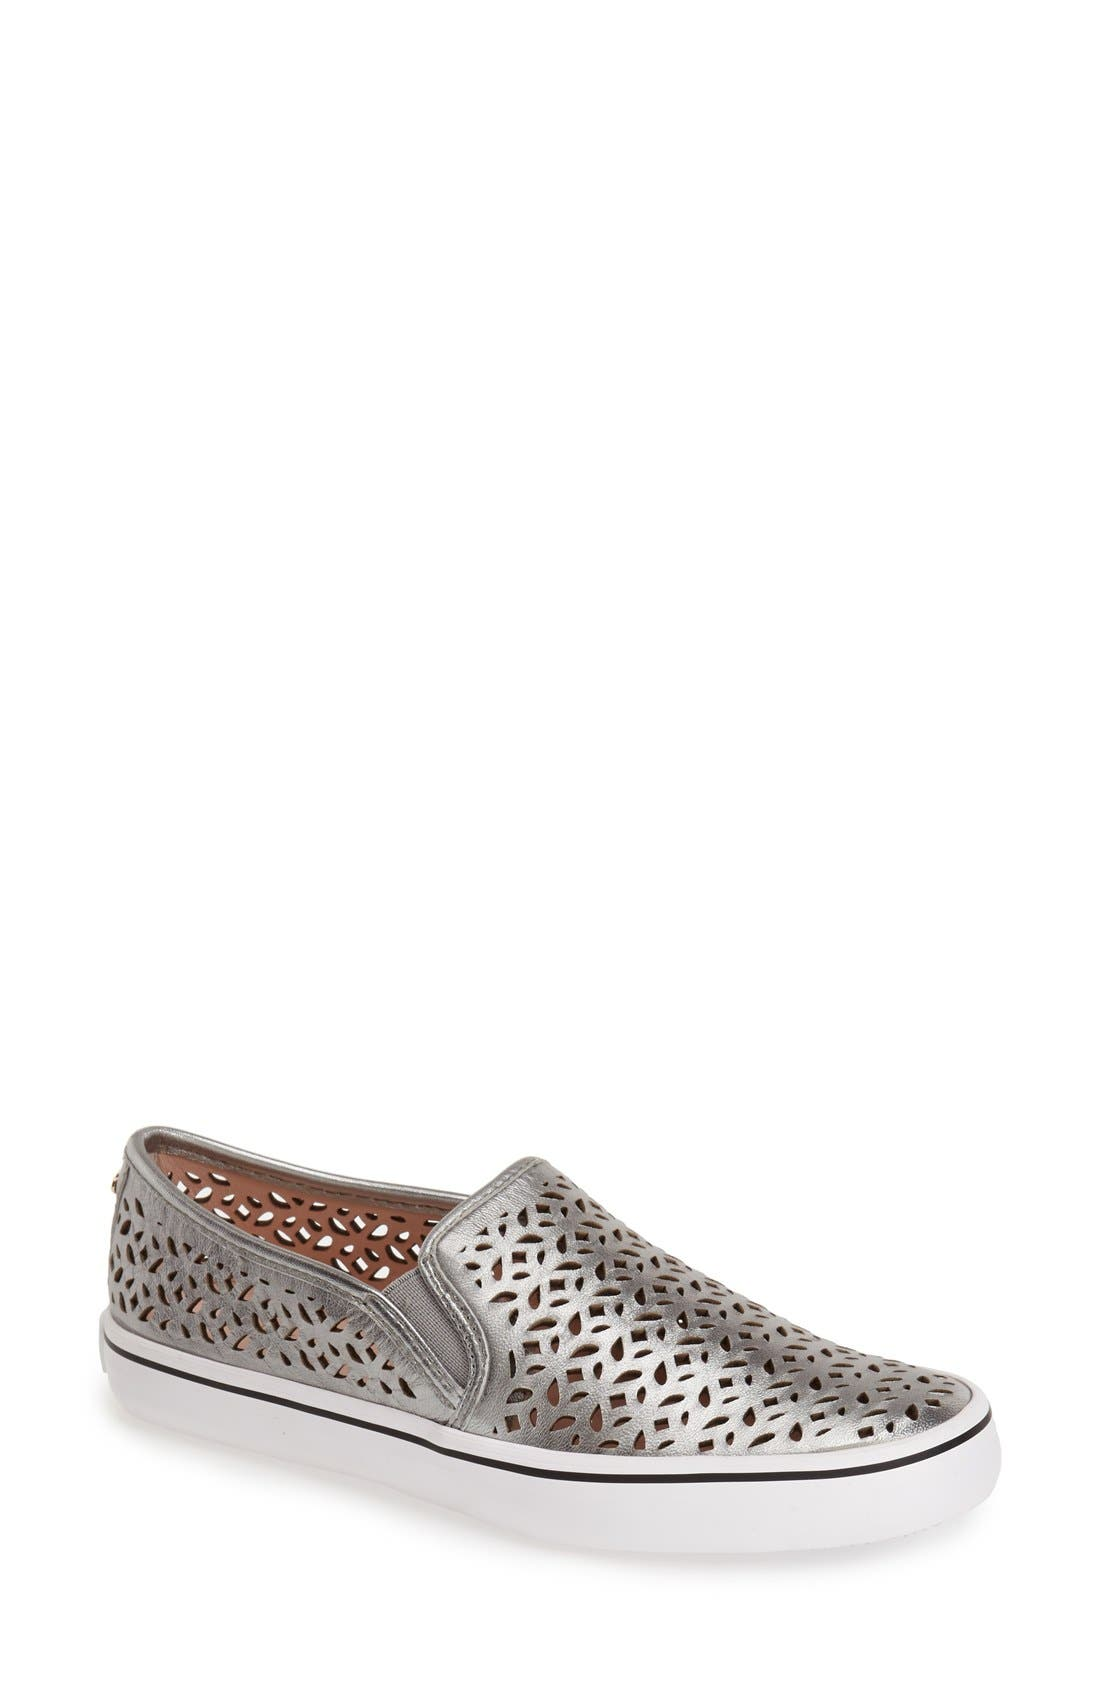 Main Image - kate spade new york 'saddie' slip-on sneaker (Women)